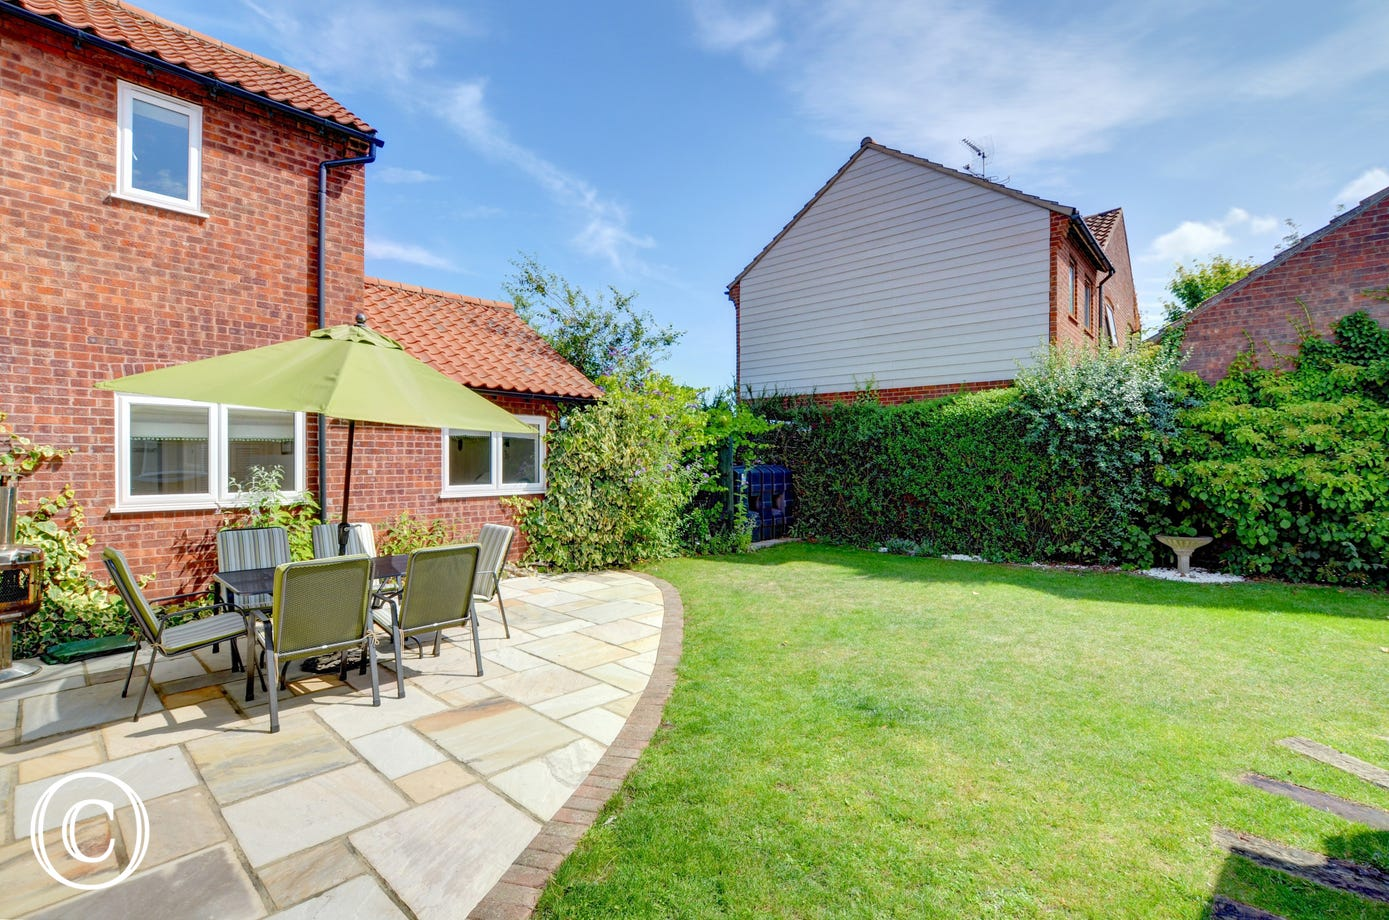 The fully enclosed garden has a patio area, with the rest laid to lawn.